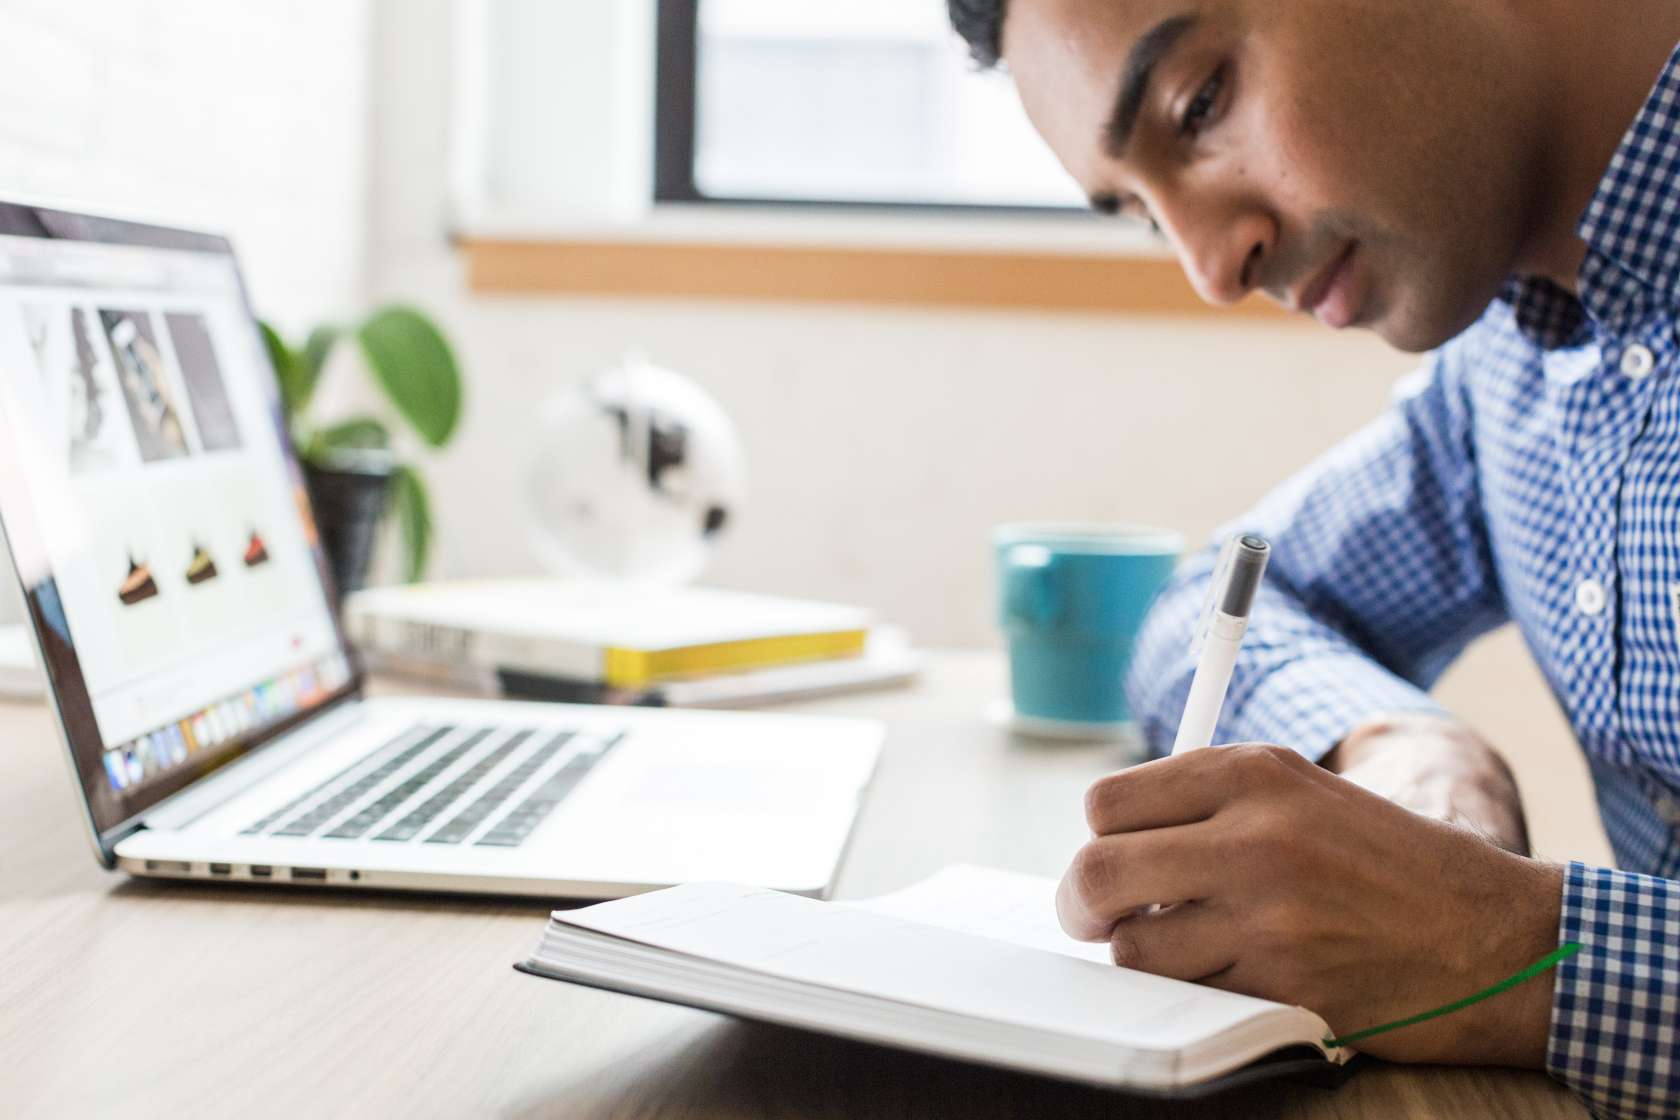 Man taking notes with laptop open